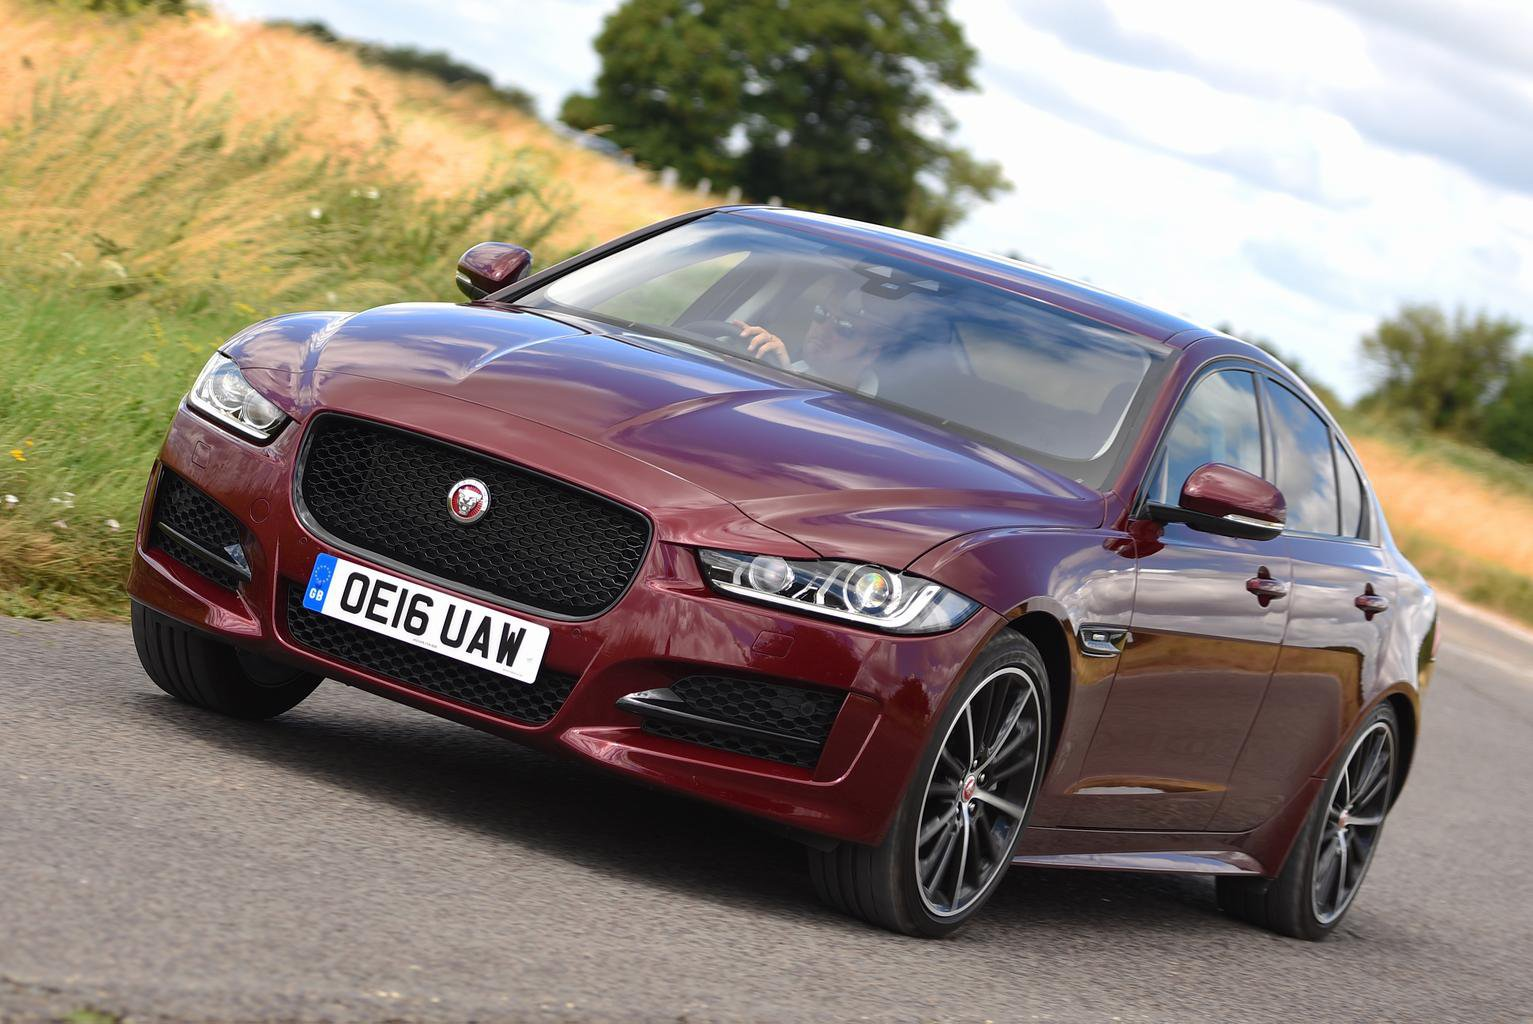 2016 Jaguar XE 2.0d 180 AWD R Sport review